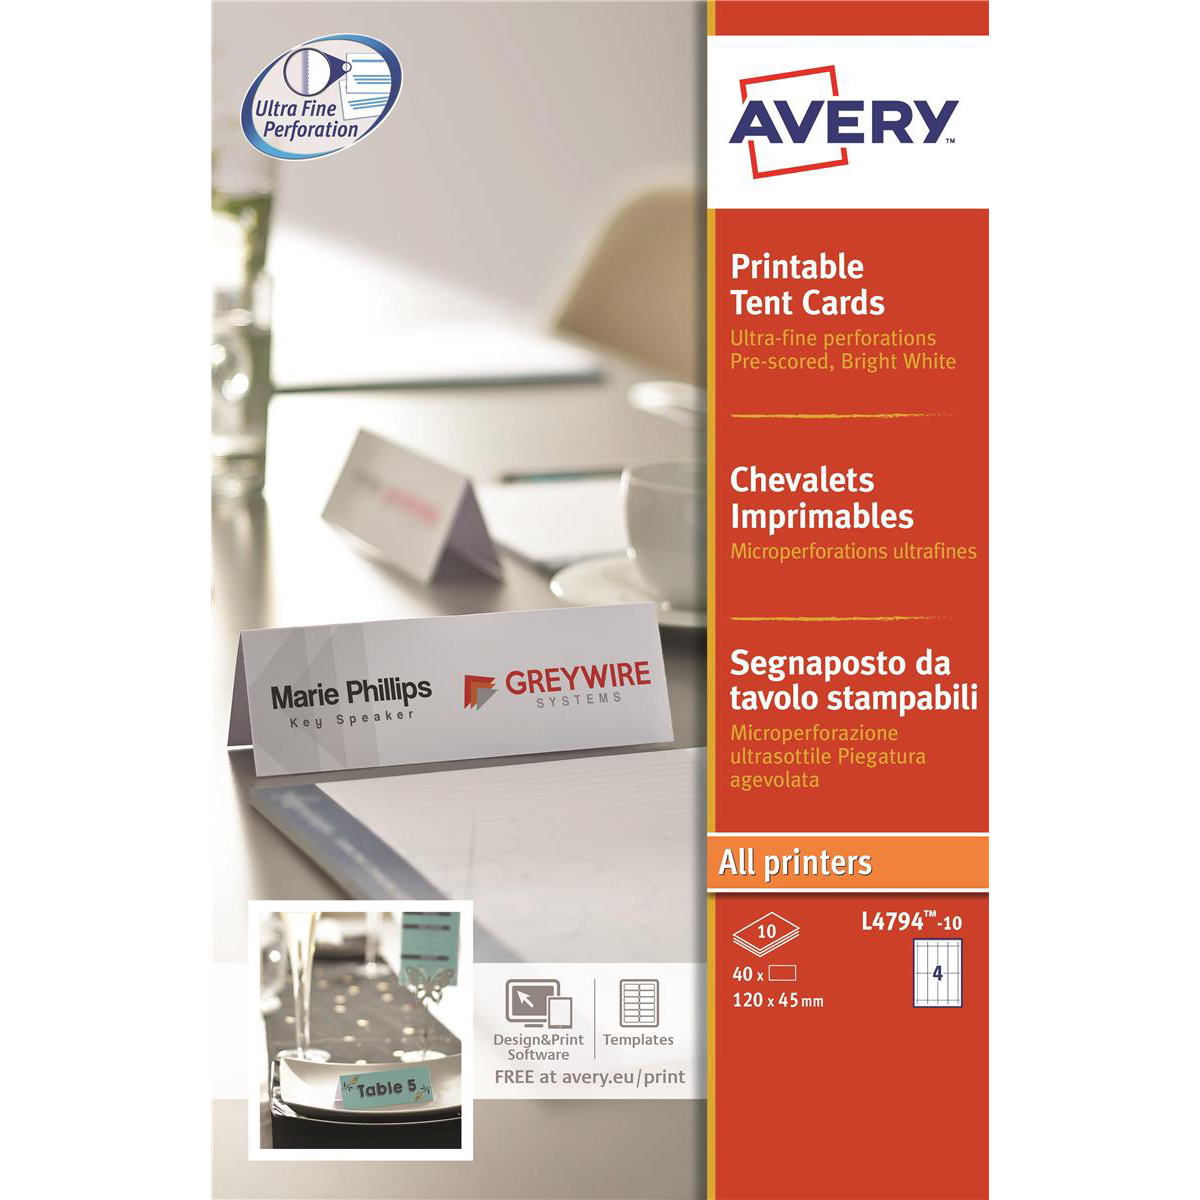 Card (160g+) Avery Printable Business Tent Card 4 per Sheet 120x45mm 190gsm White Ref L4794-10 40 labels